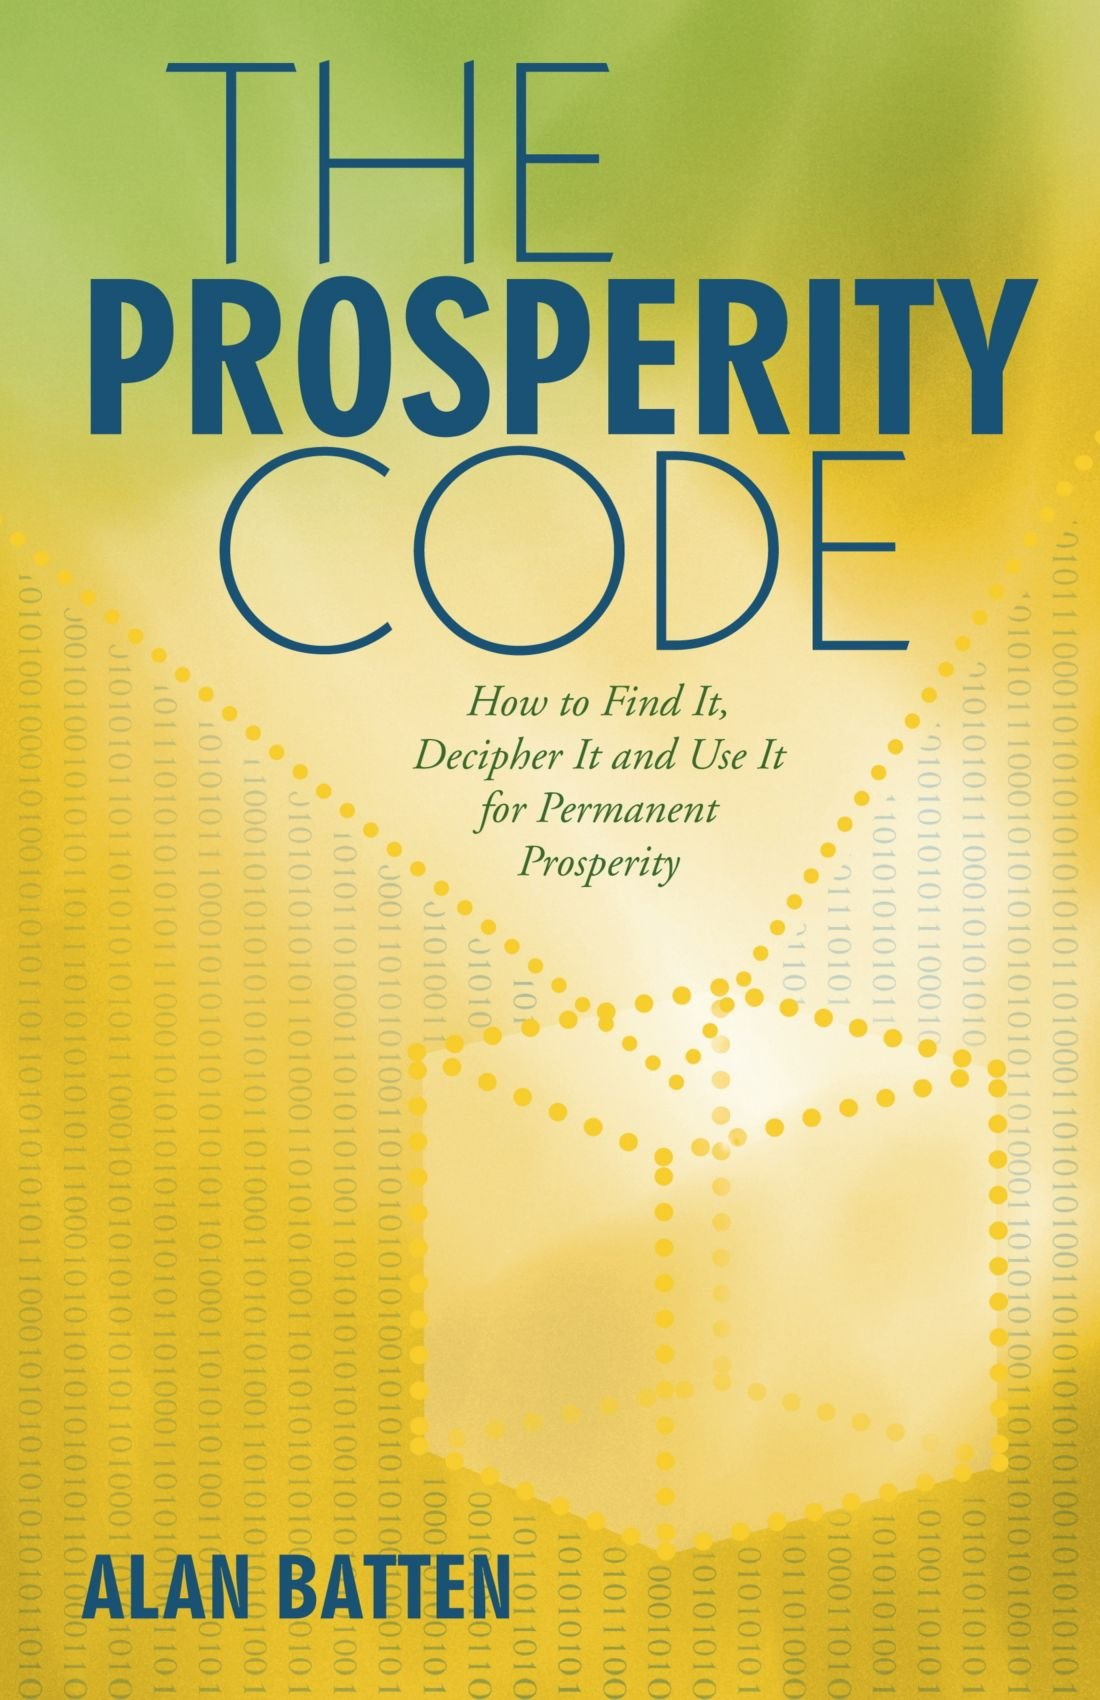 The Prosperity Code: How to Find It, Decipher It and Use It For Permanent  Prosperity: Alan Batten: 9781452552675: Amazon.com: Books